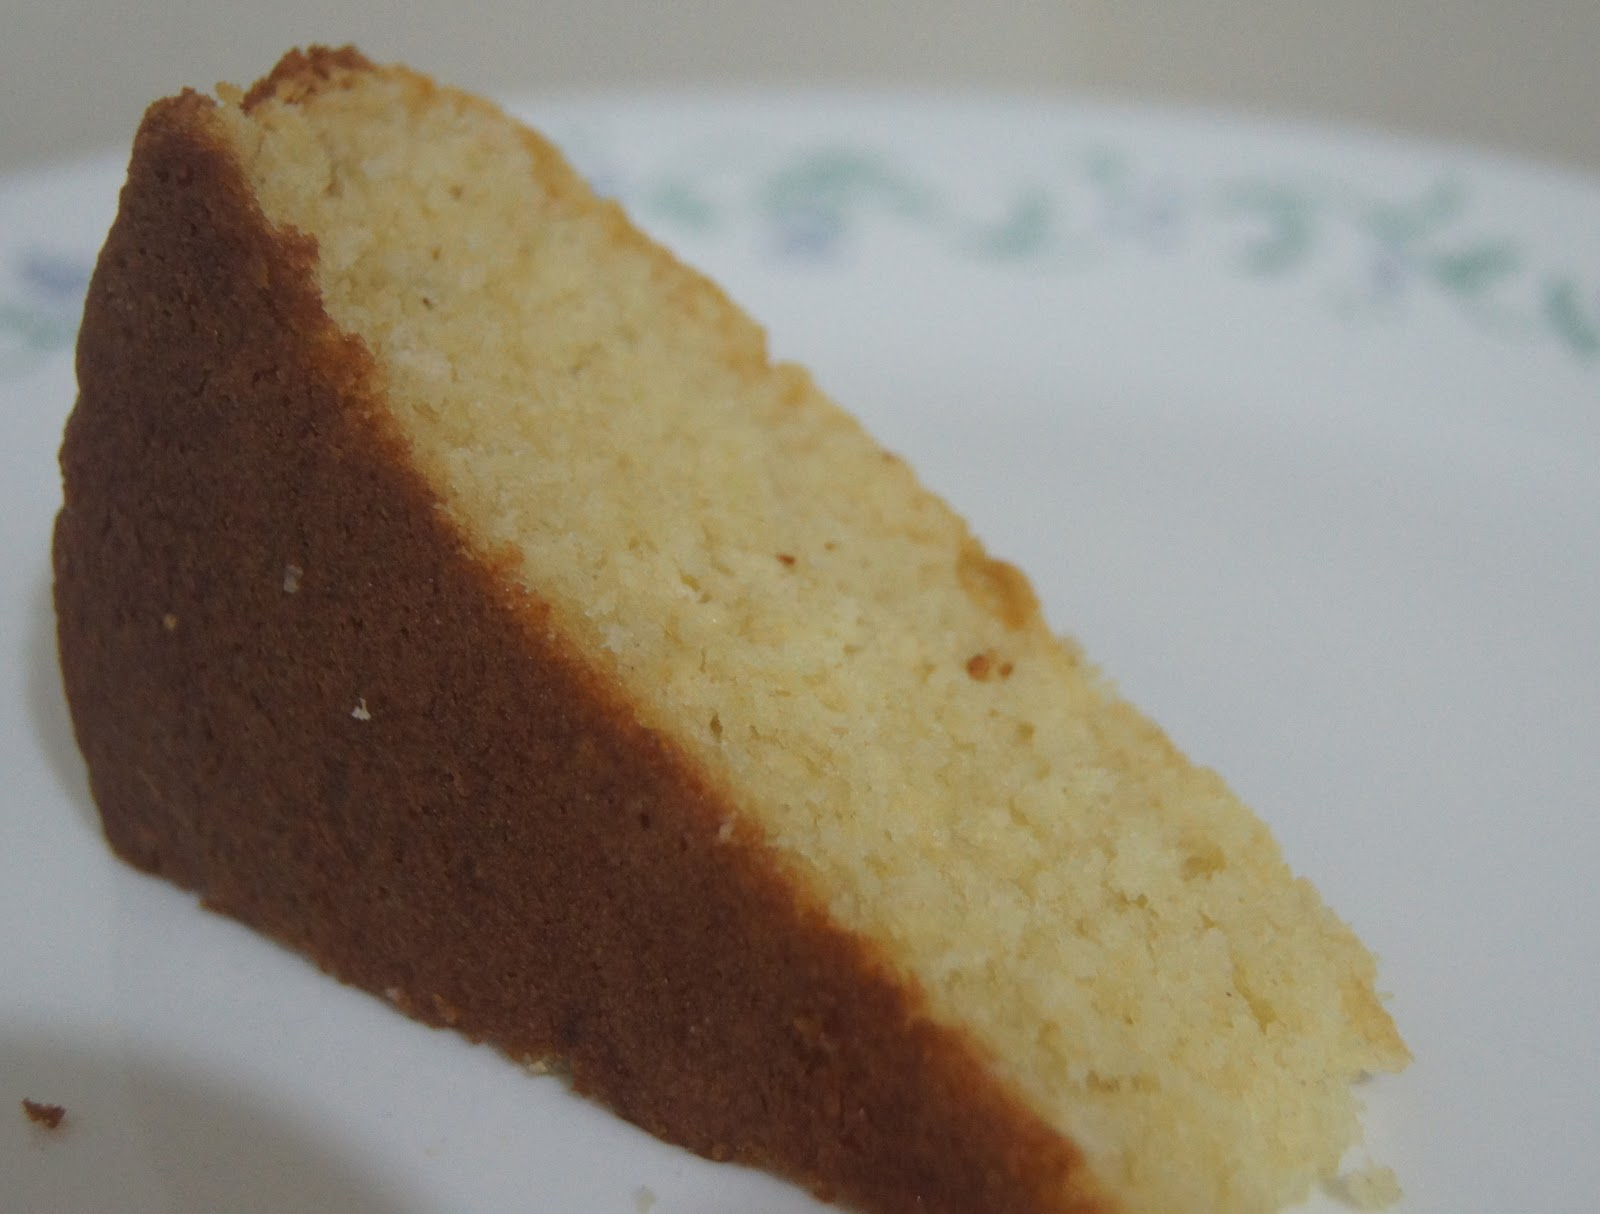 Condensed Milk Cake Recipe In Microwave